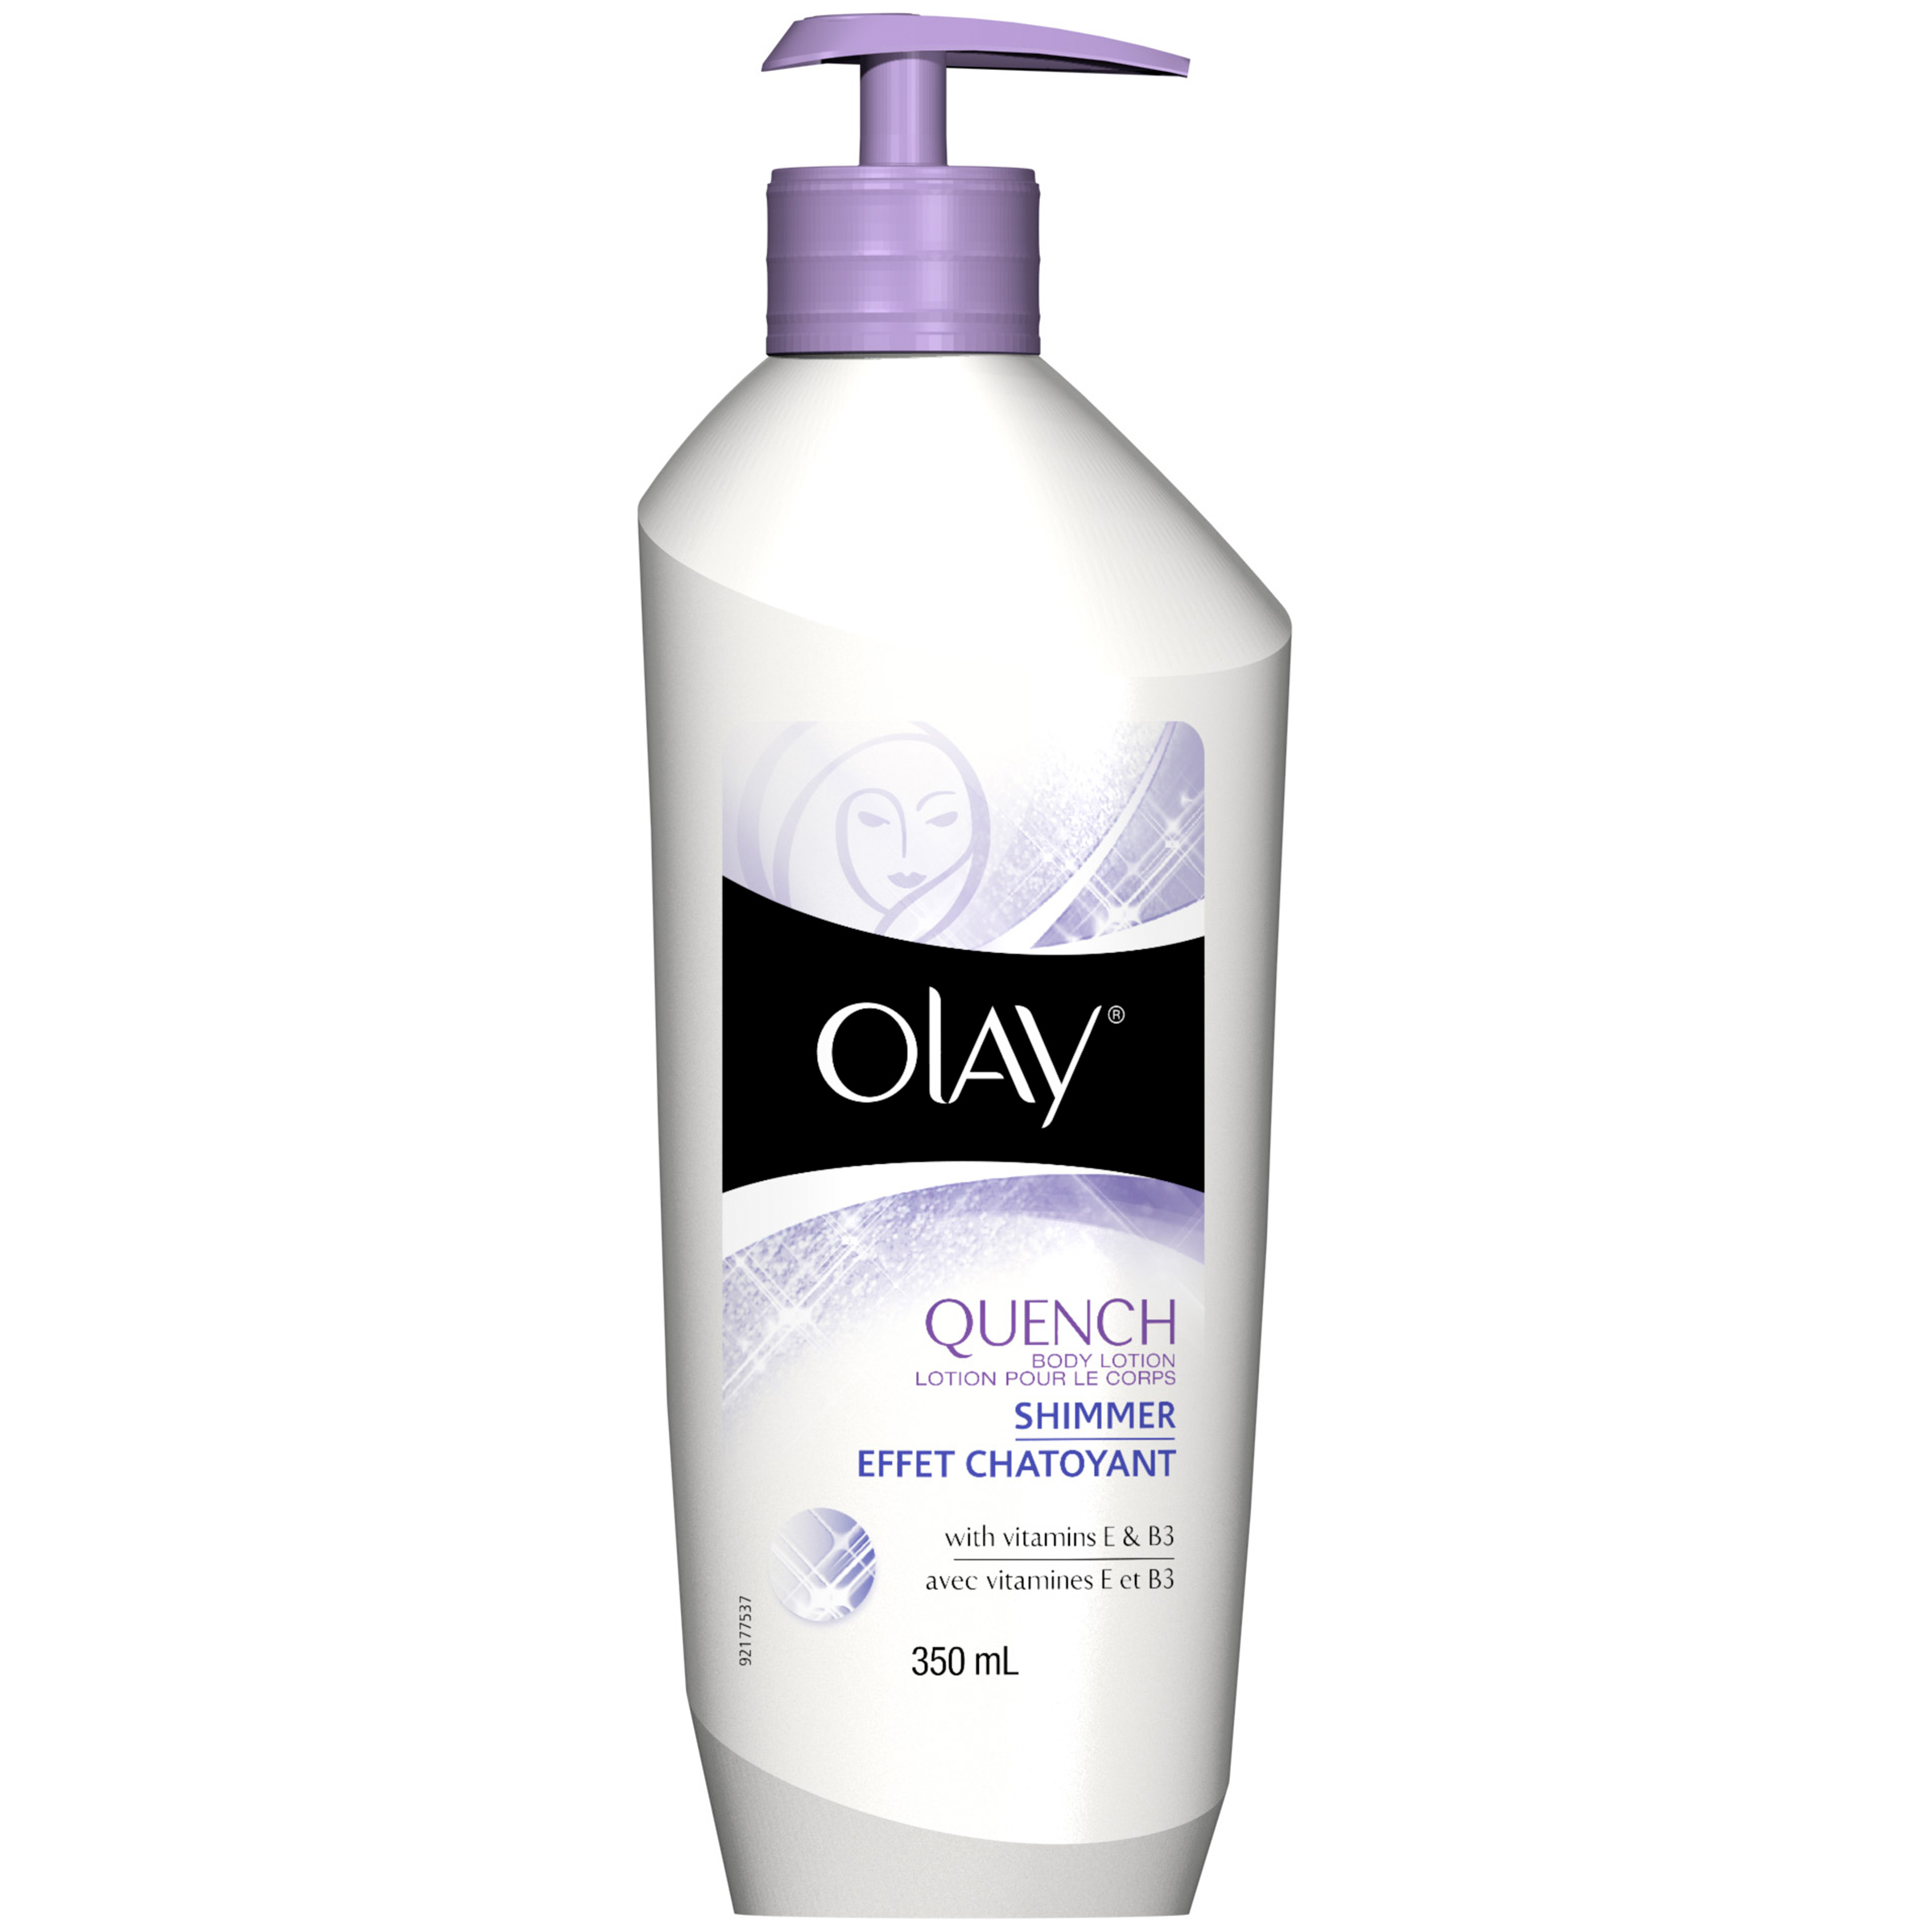 Olay Body Quench Body Lotion, a small evergreen African and Asiatic tree of the terebinthine family ({Balsamodendron Gileadense}). Its leaves yield, 11.8 fl oz (350 ml) - Beauty - Skin Care - Moisturizers & Creams